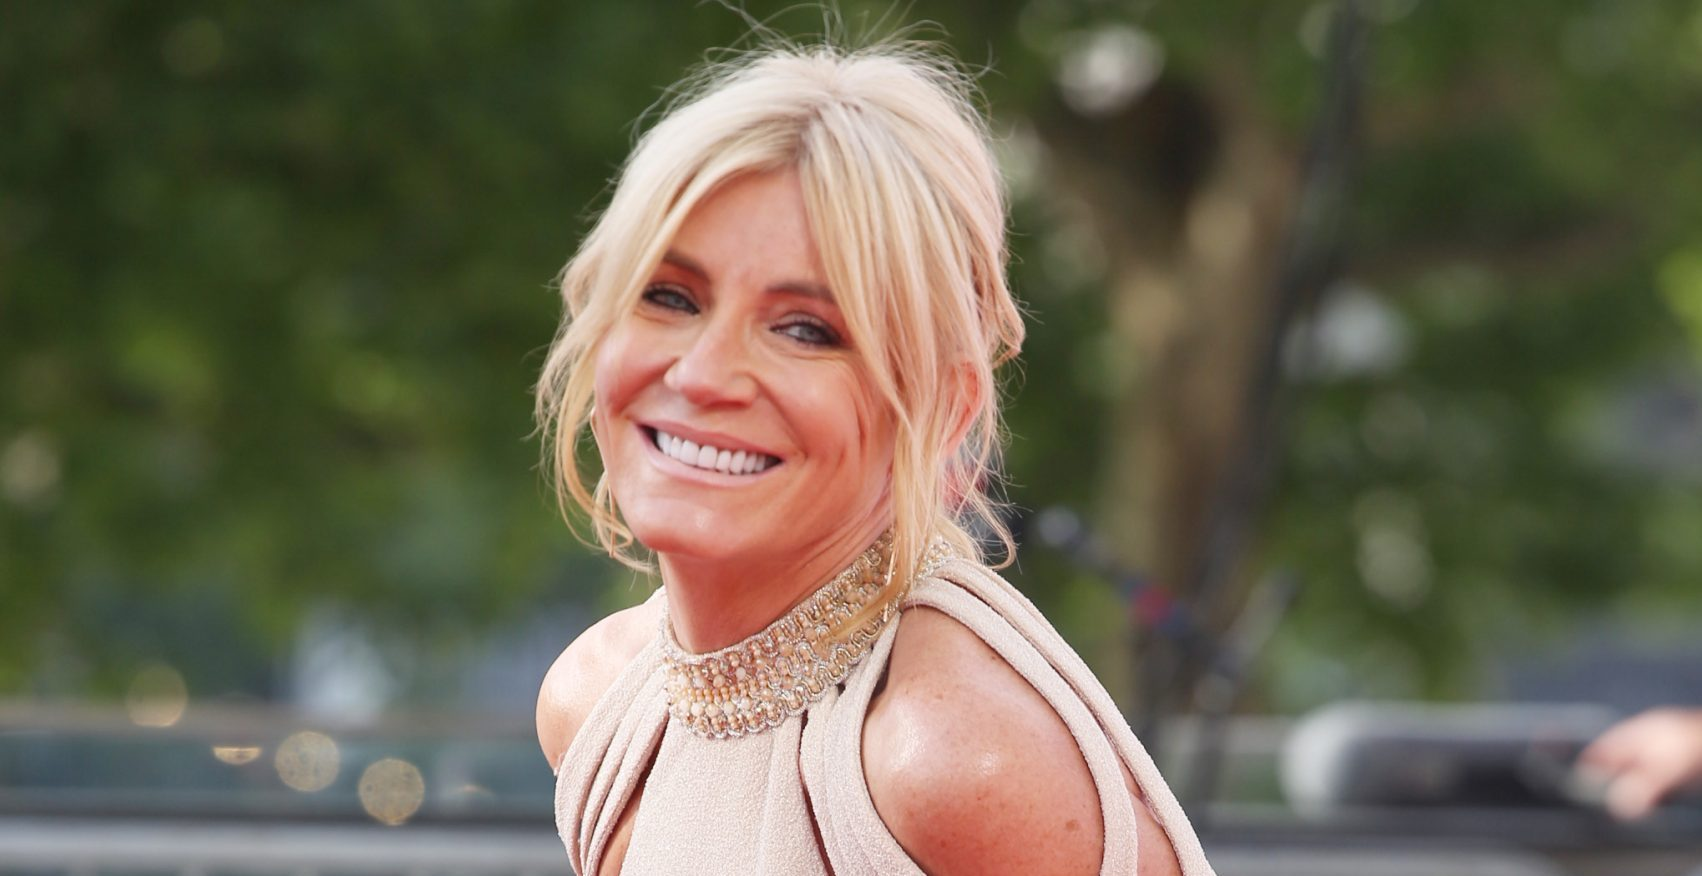 Michelle Collins didn't receive an invite to EastEnders 35th anniversary party